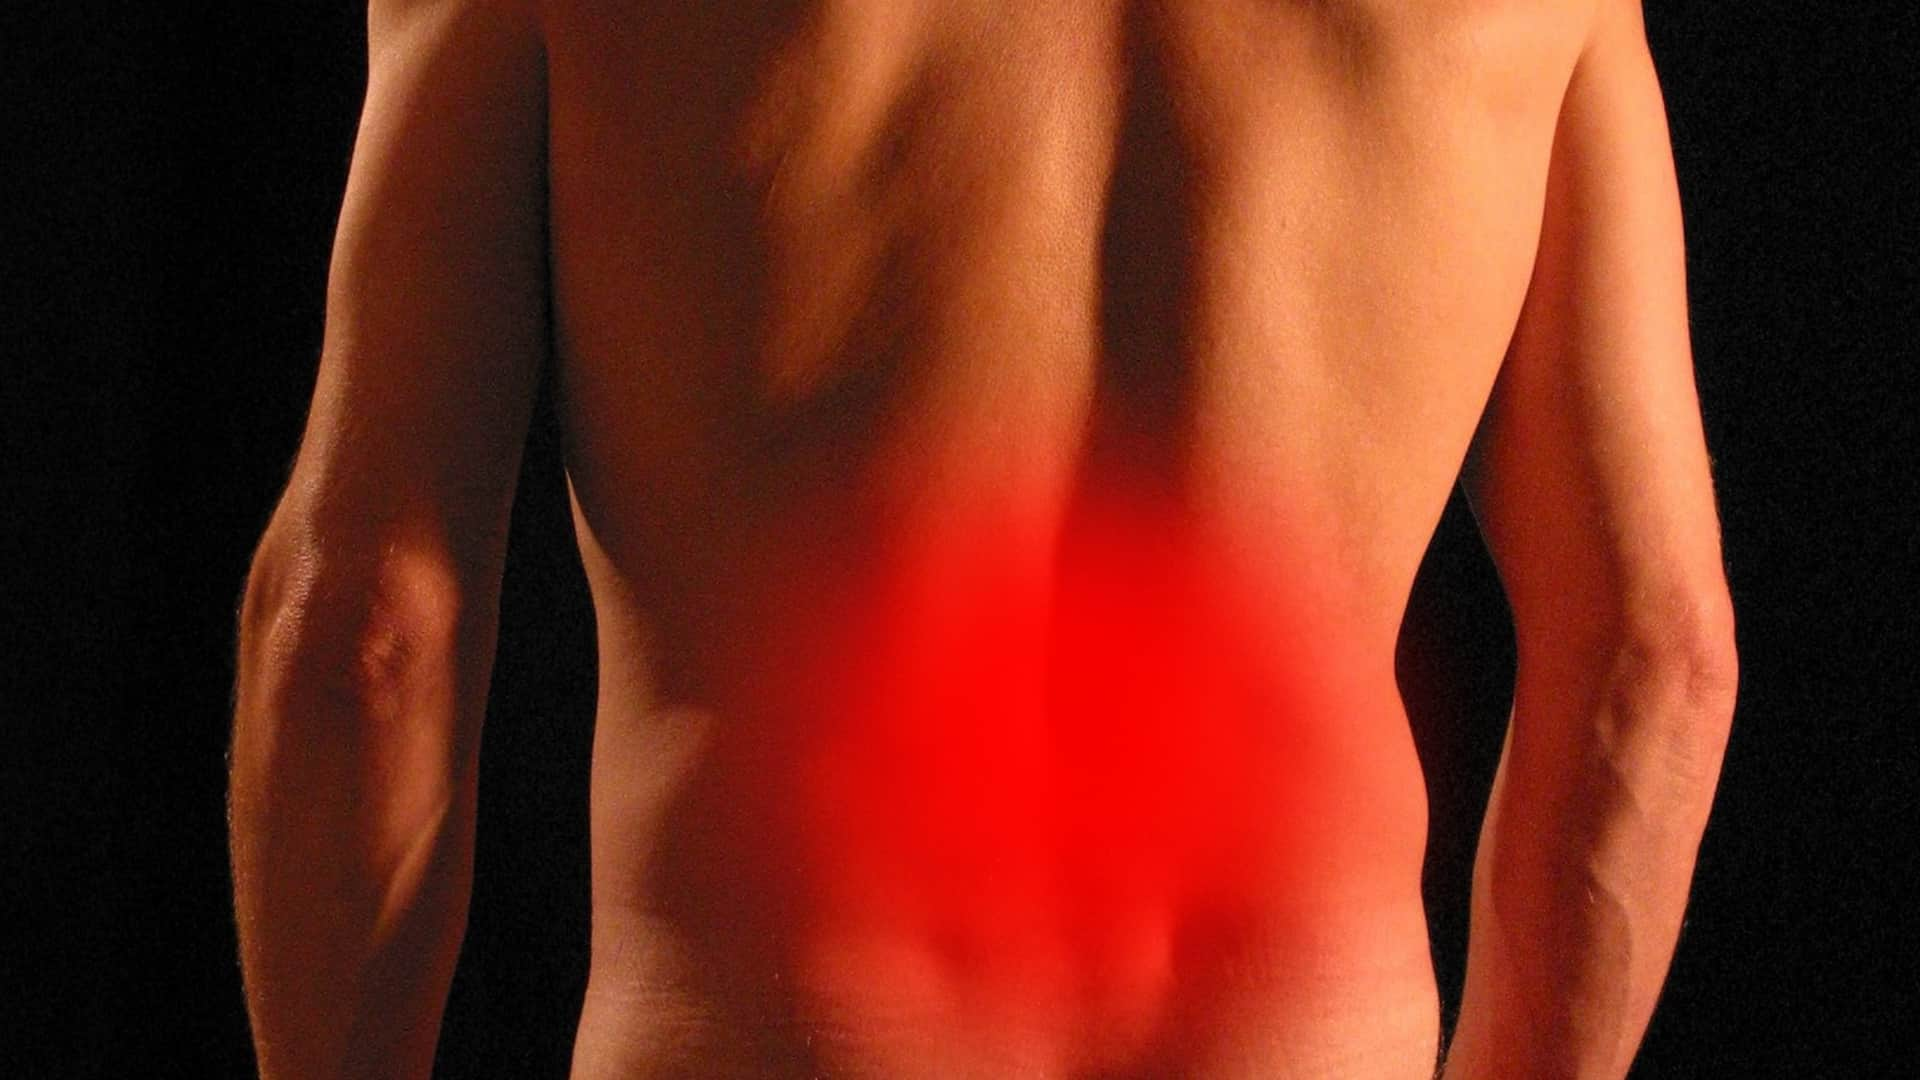 Treatments of Spinal Diseases and Their Effectiveness